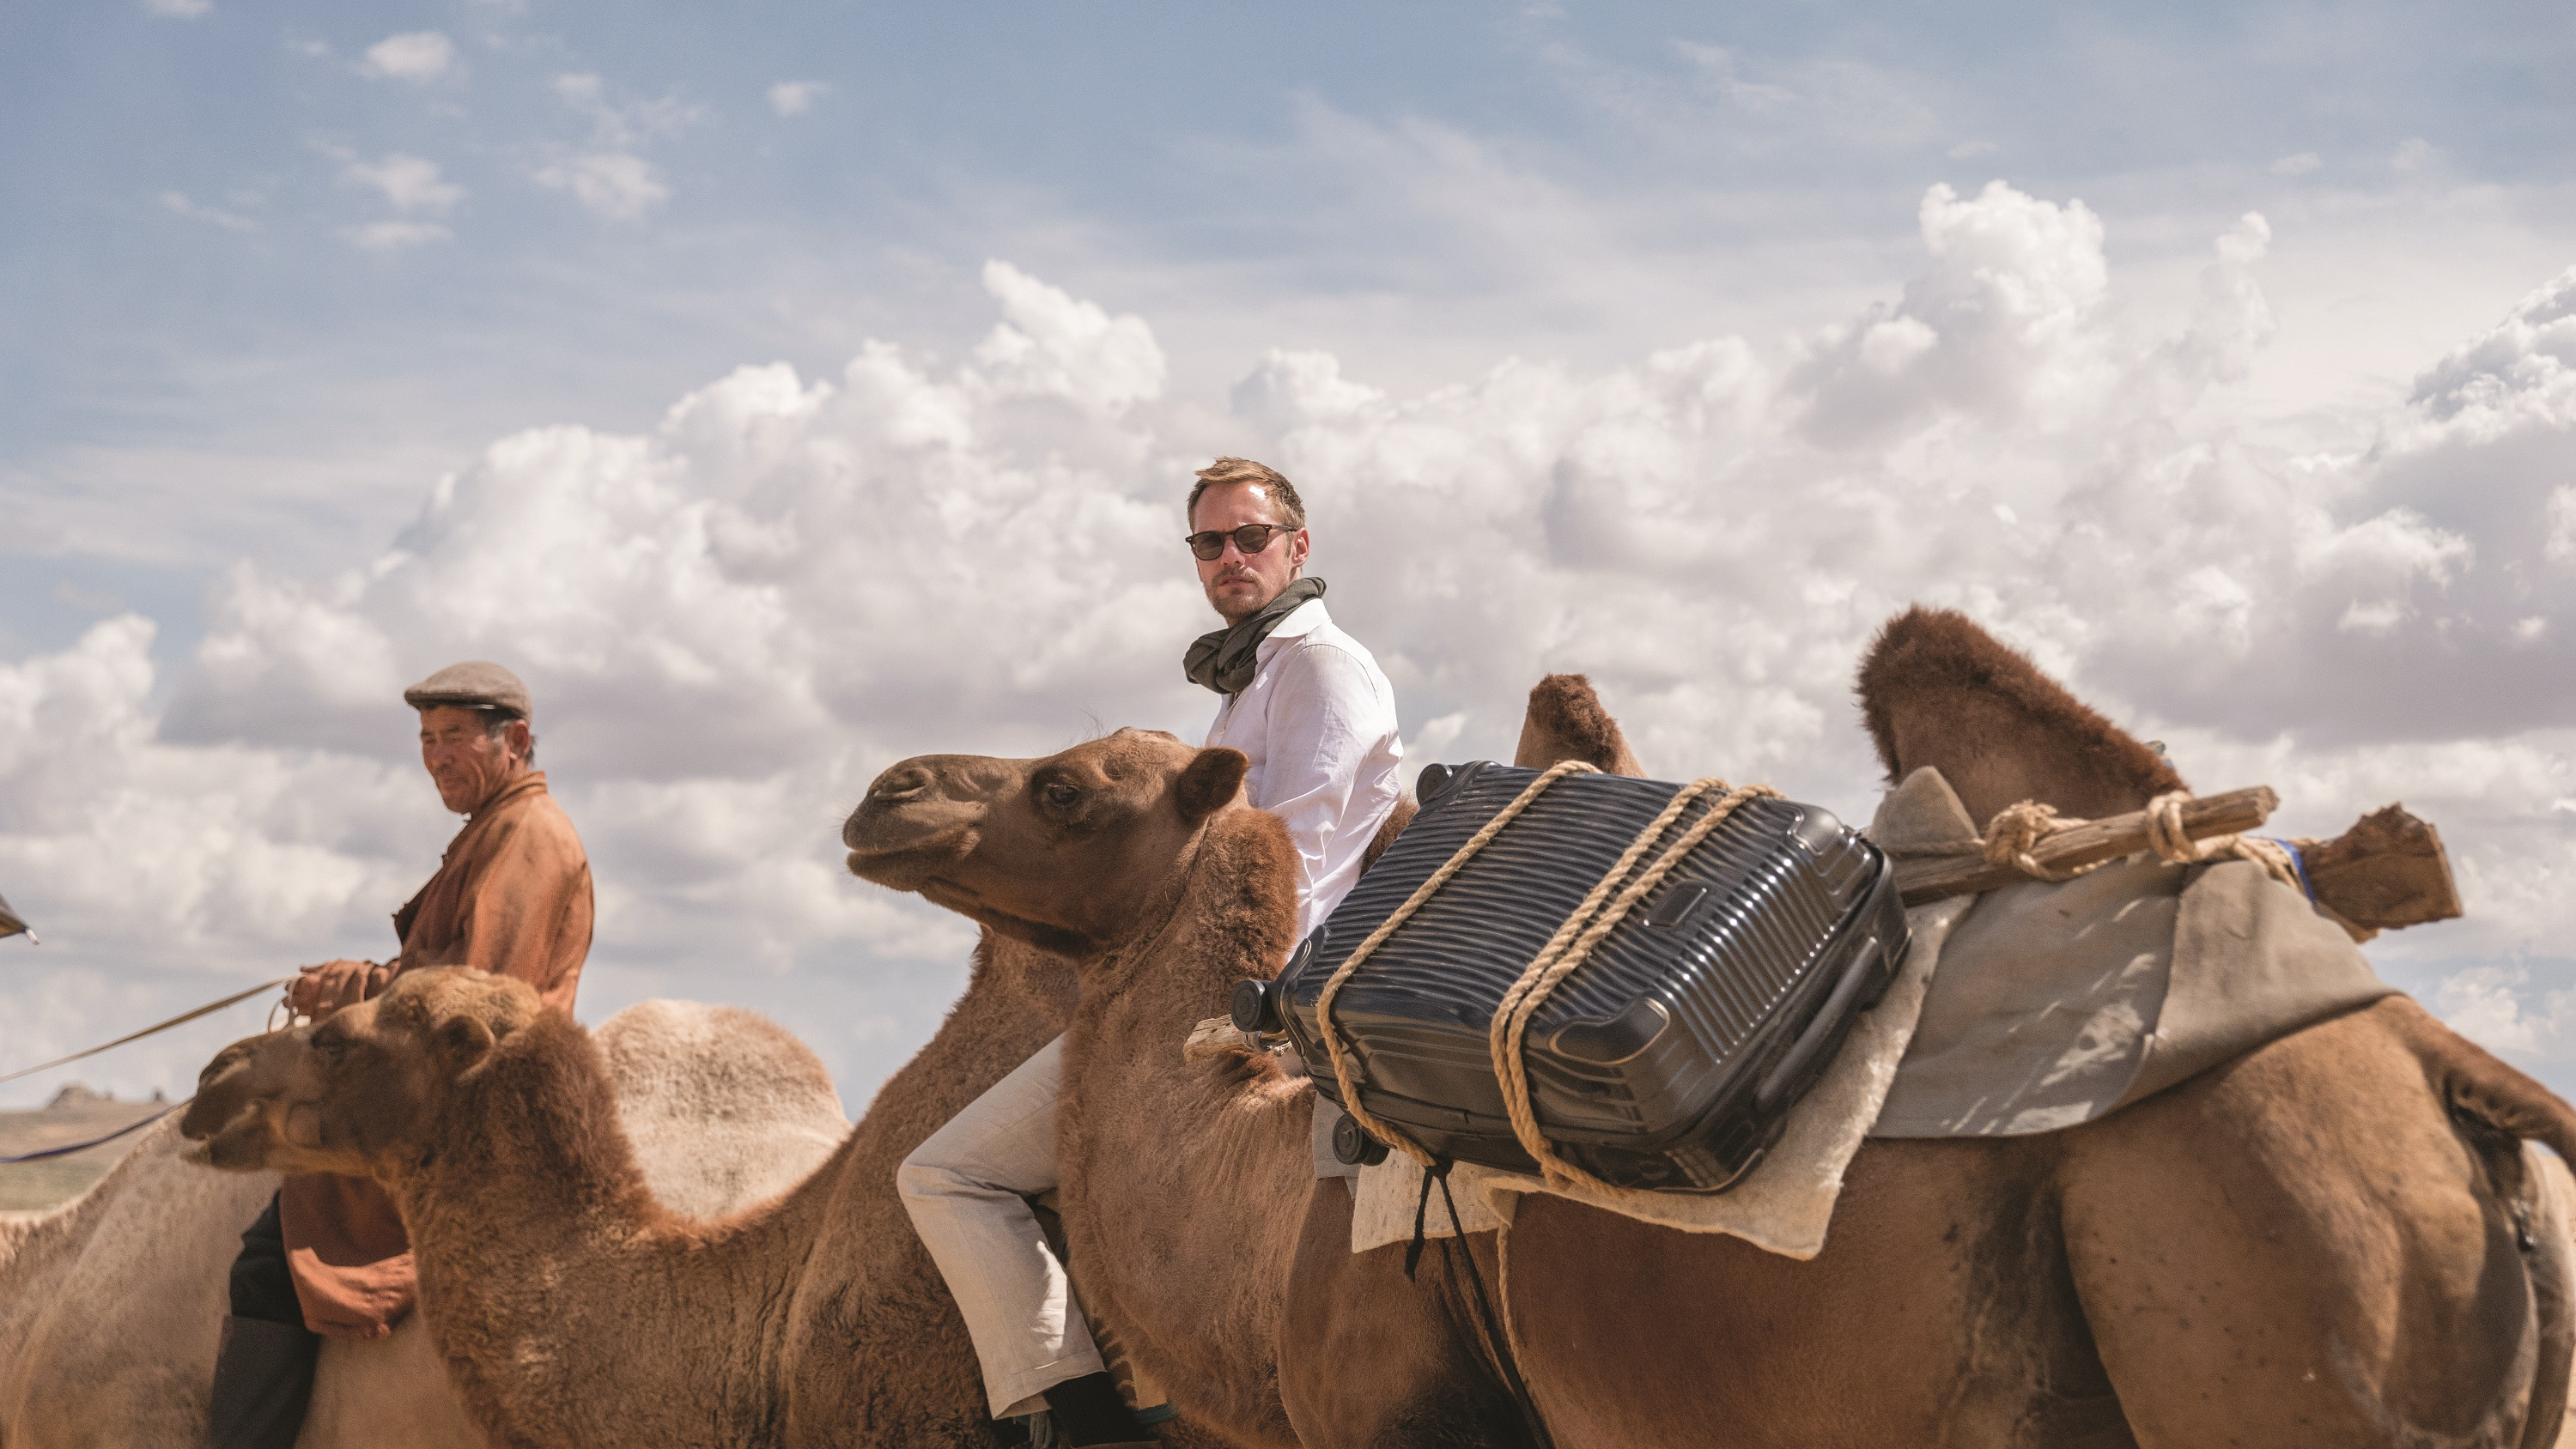 Alexander Skarsgård is fronting Tumi's new campaign for its Latitude collection.